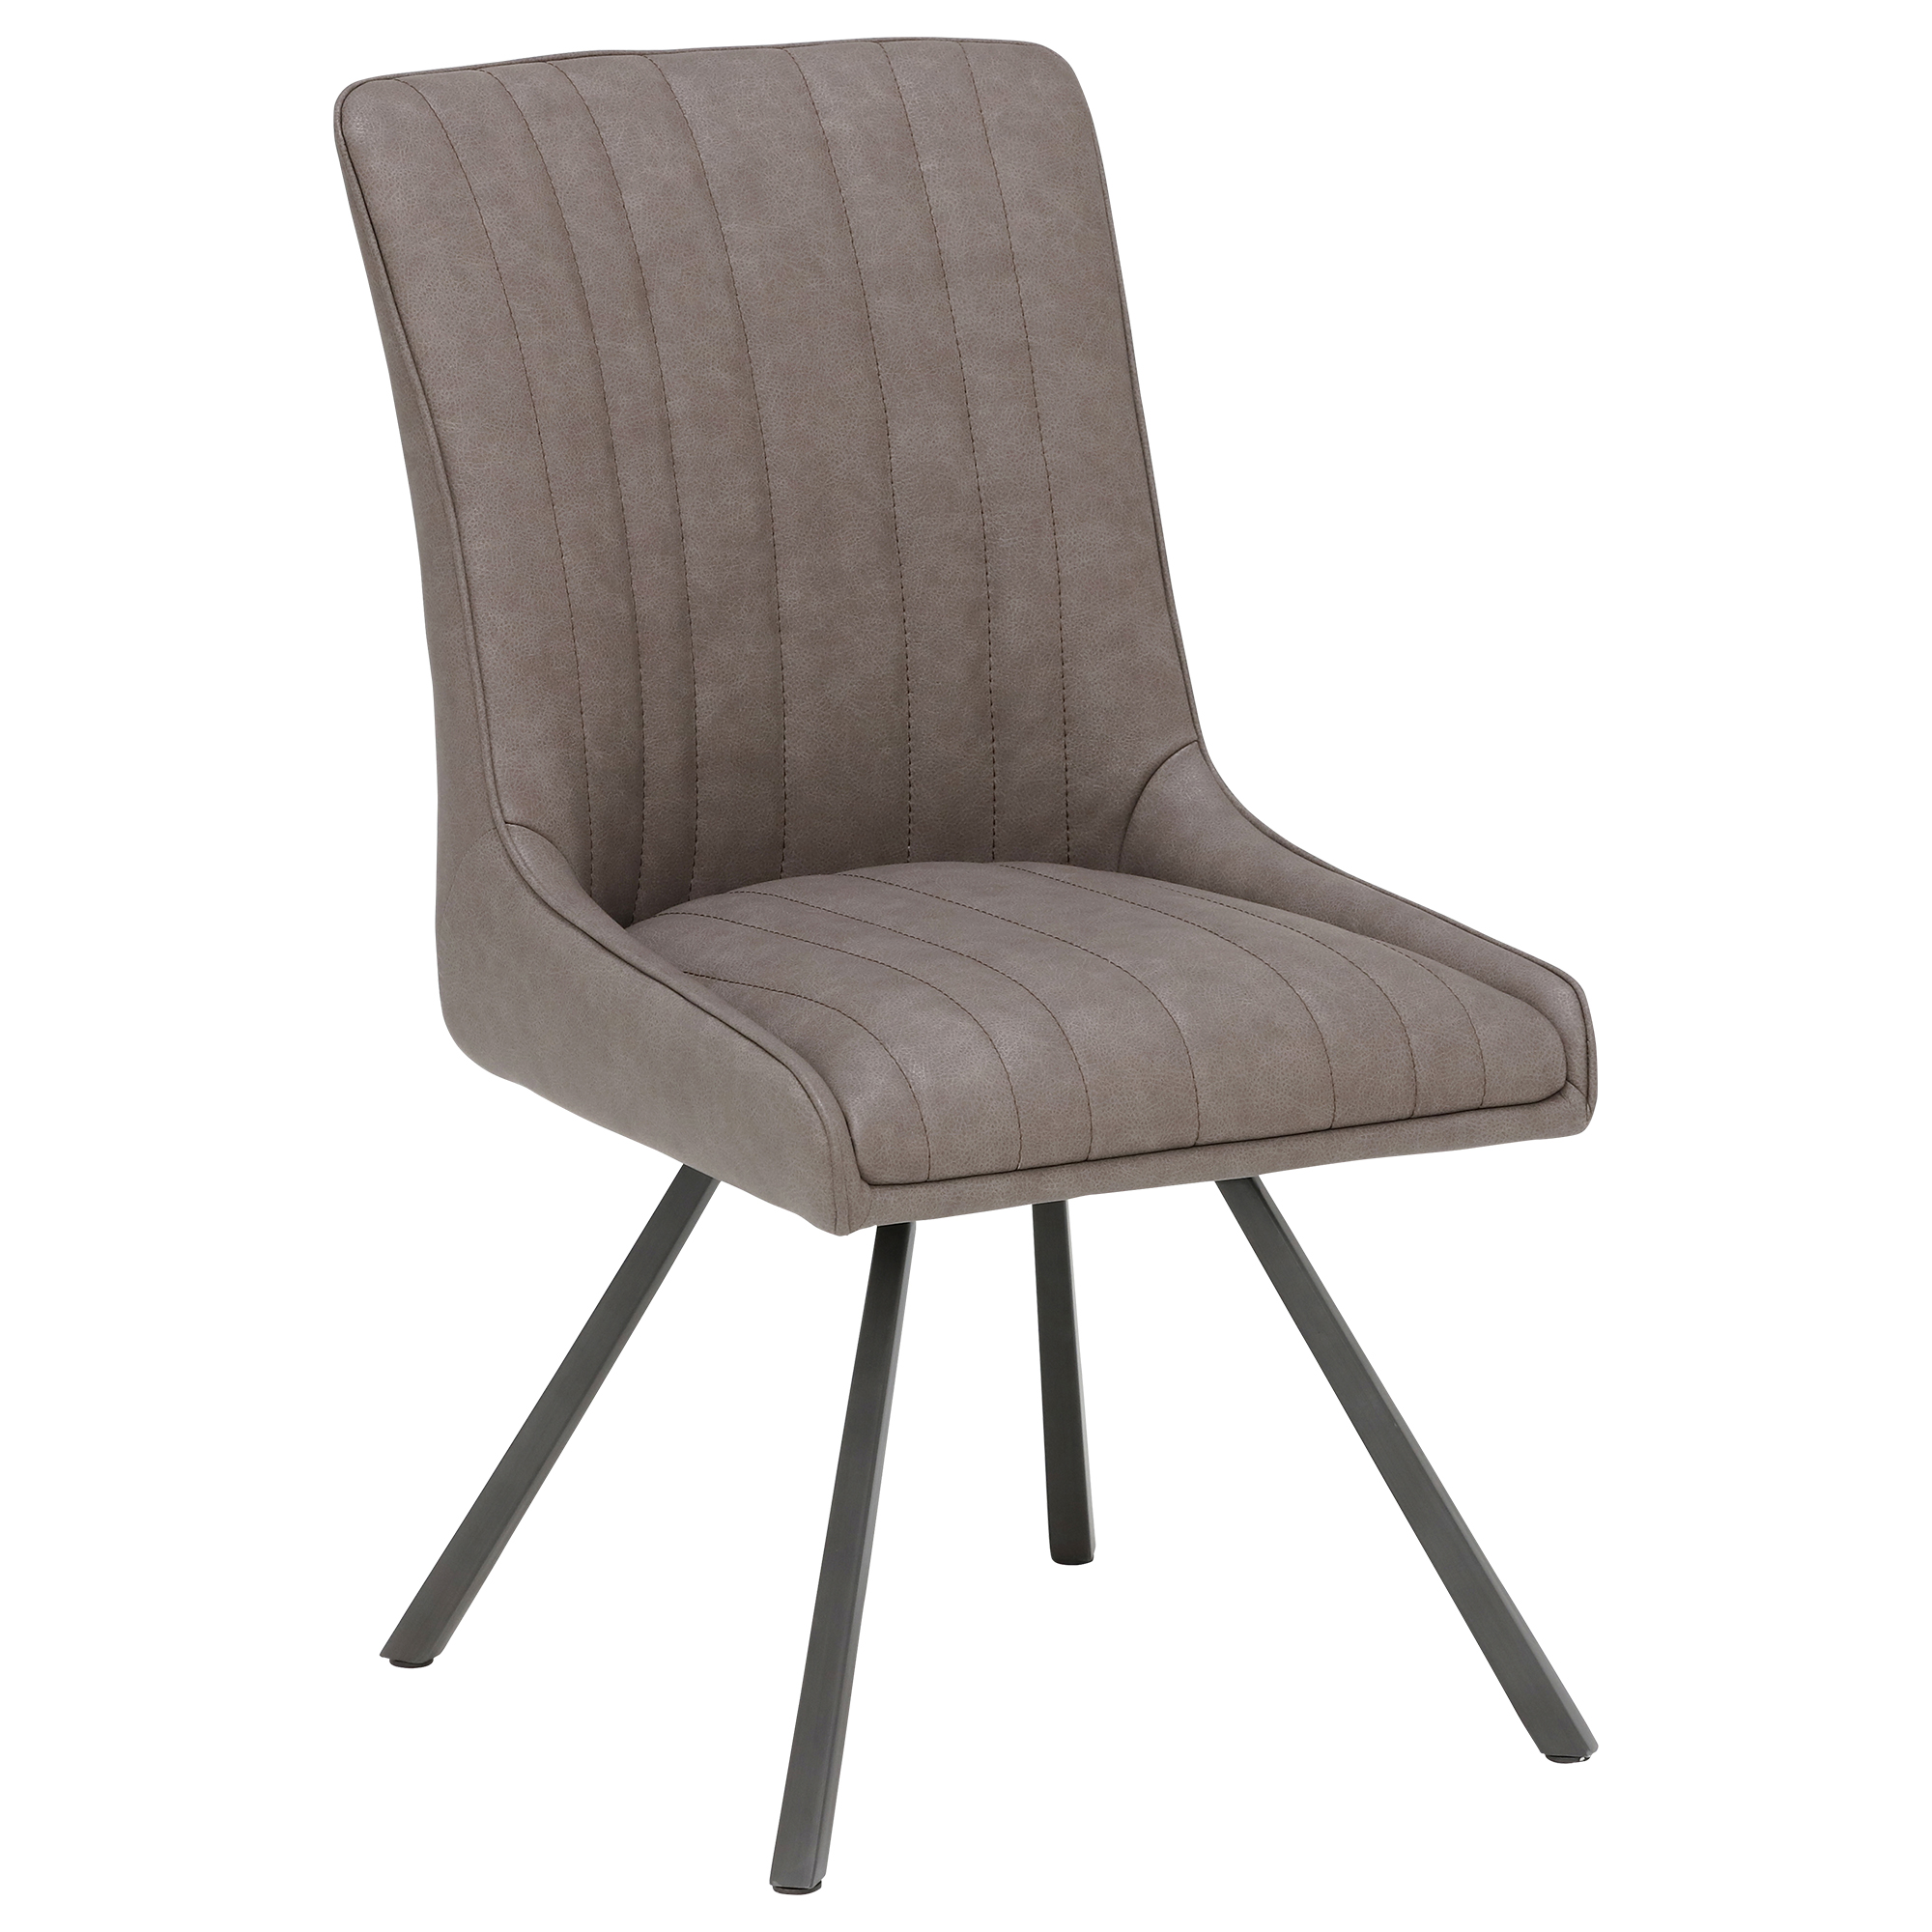 soft faux leather dining chair high back metal legs